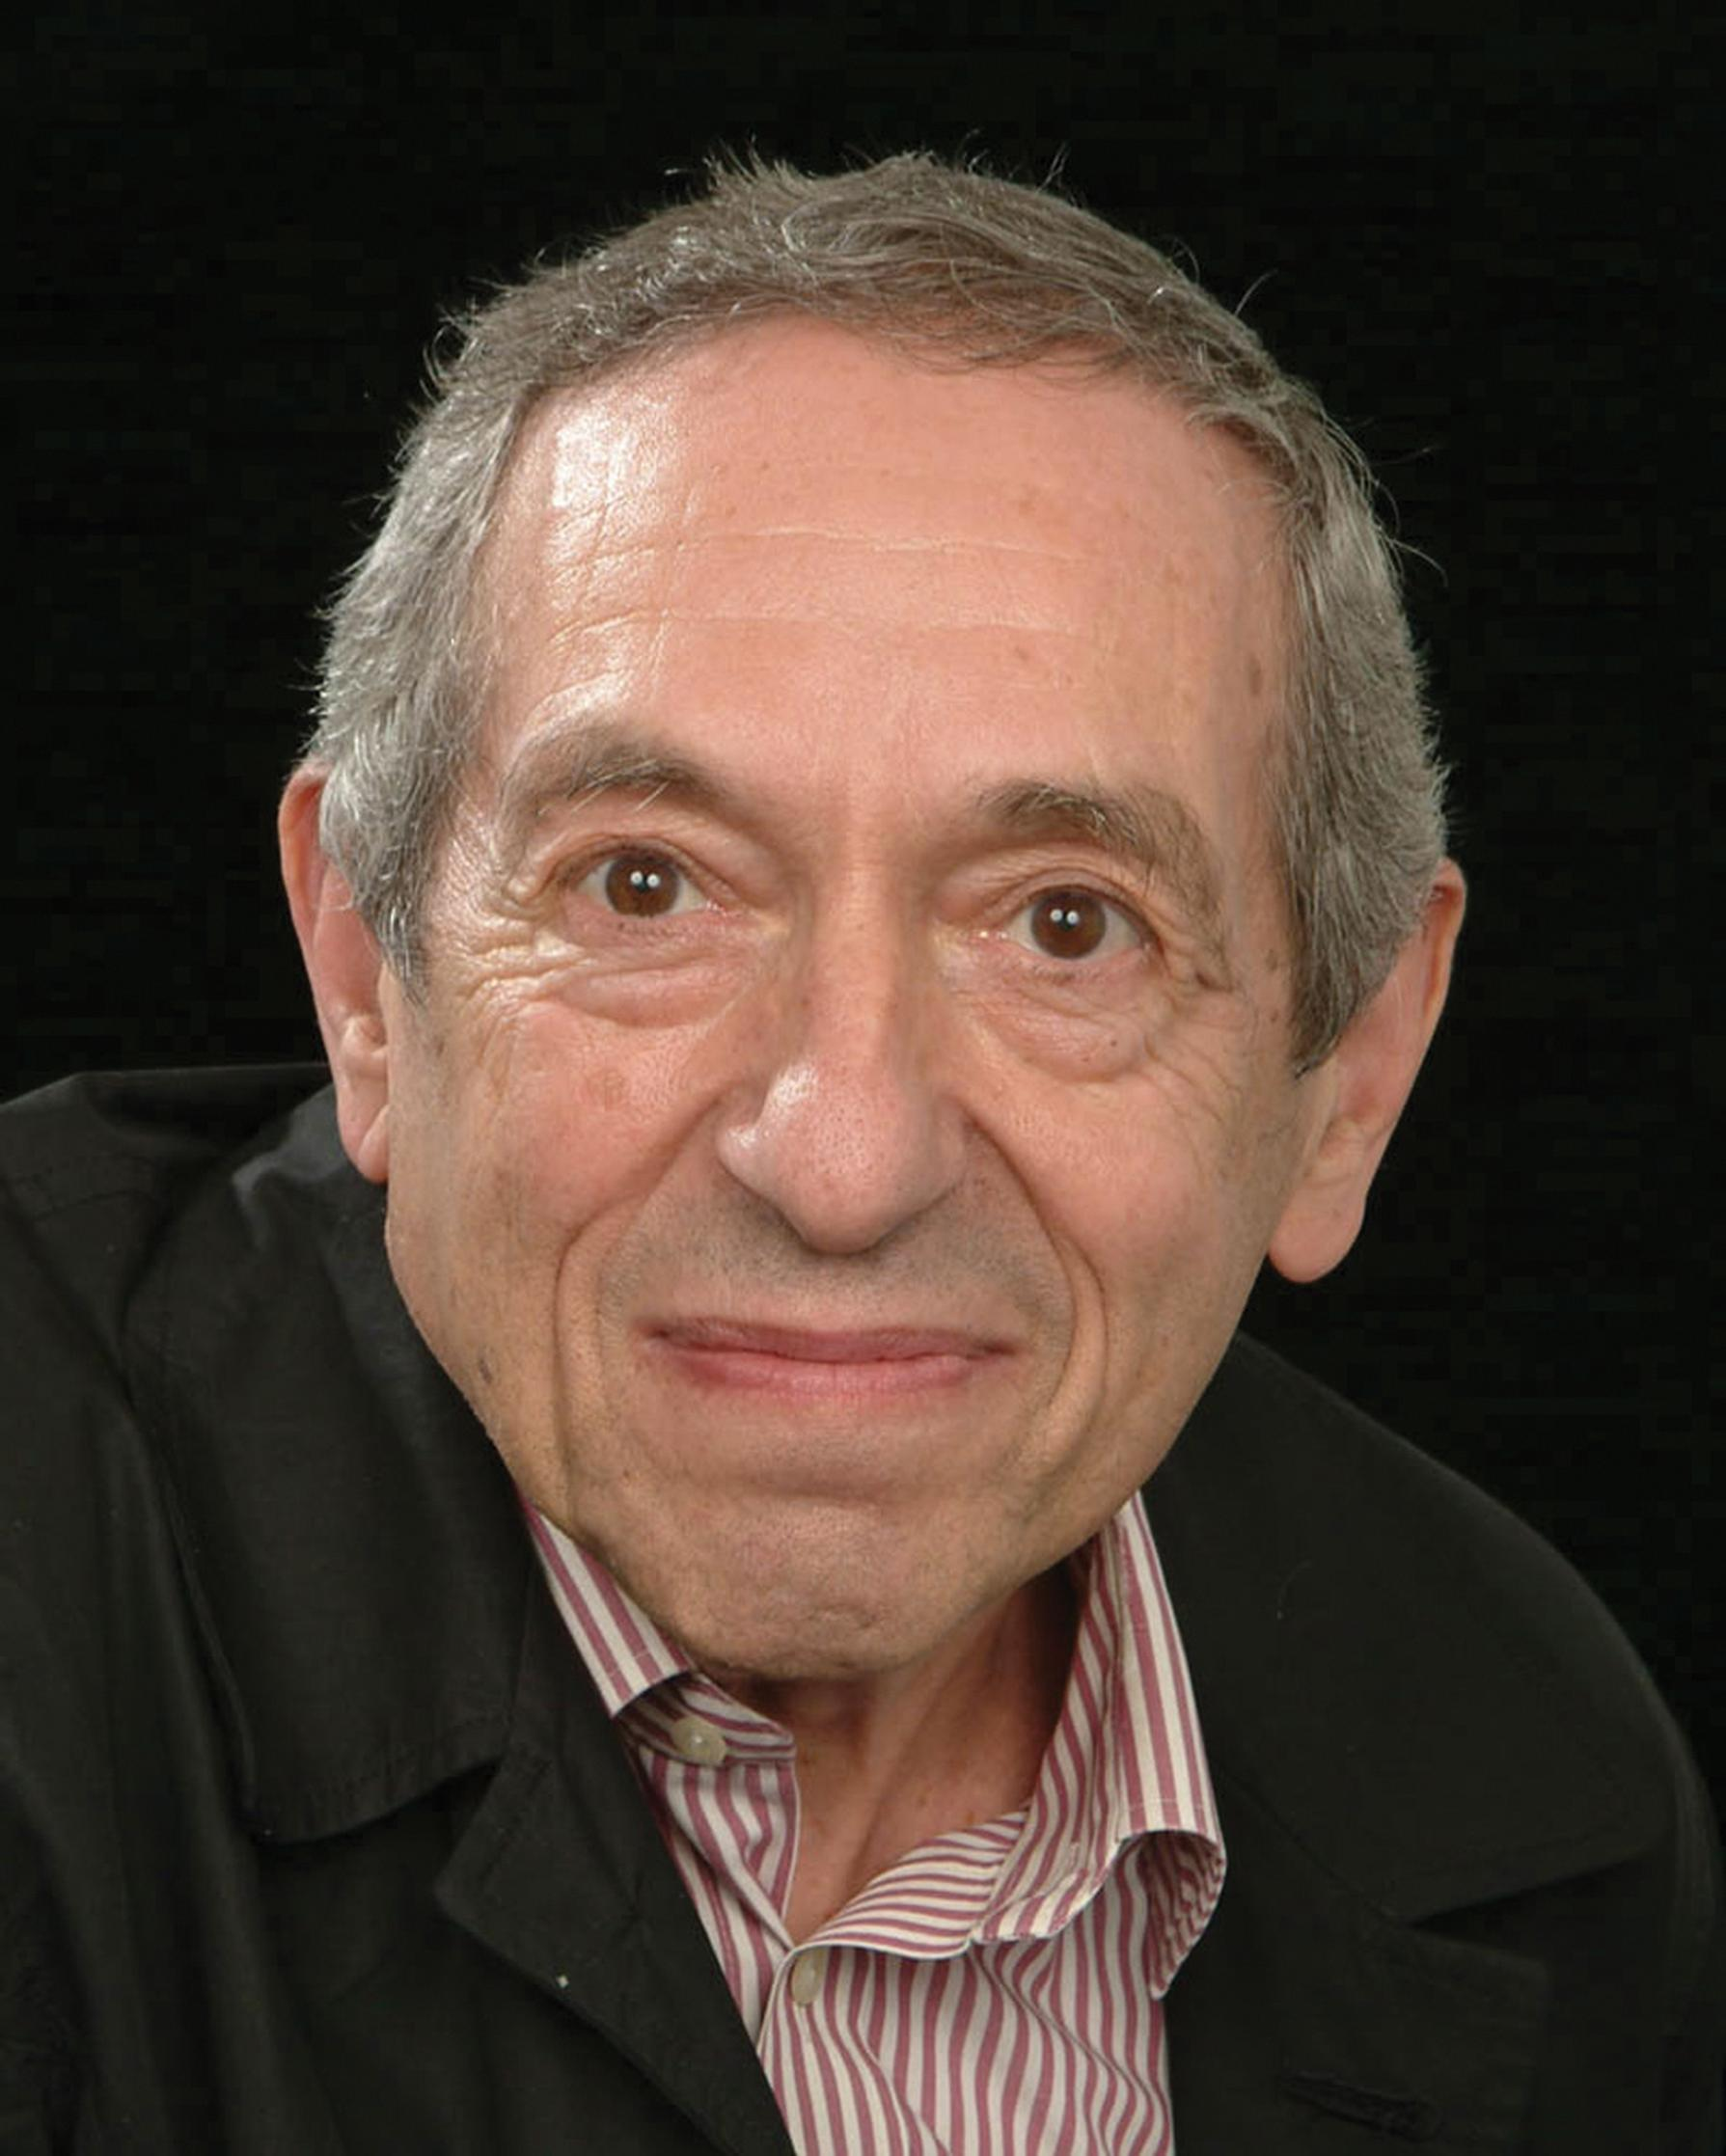 Mayer Hillman is a researcher, commentator, and author in the fields of transport, environment, urban planning and road safety